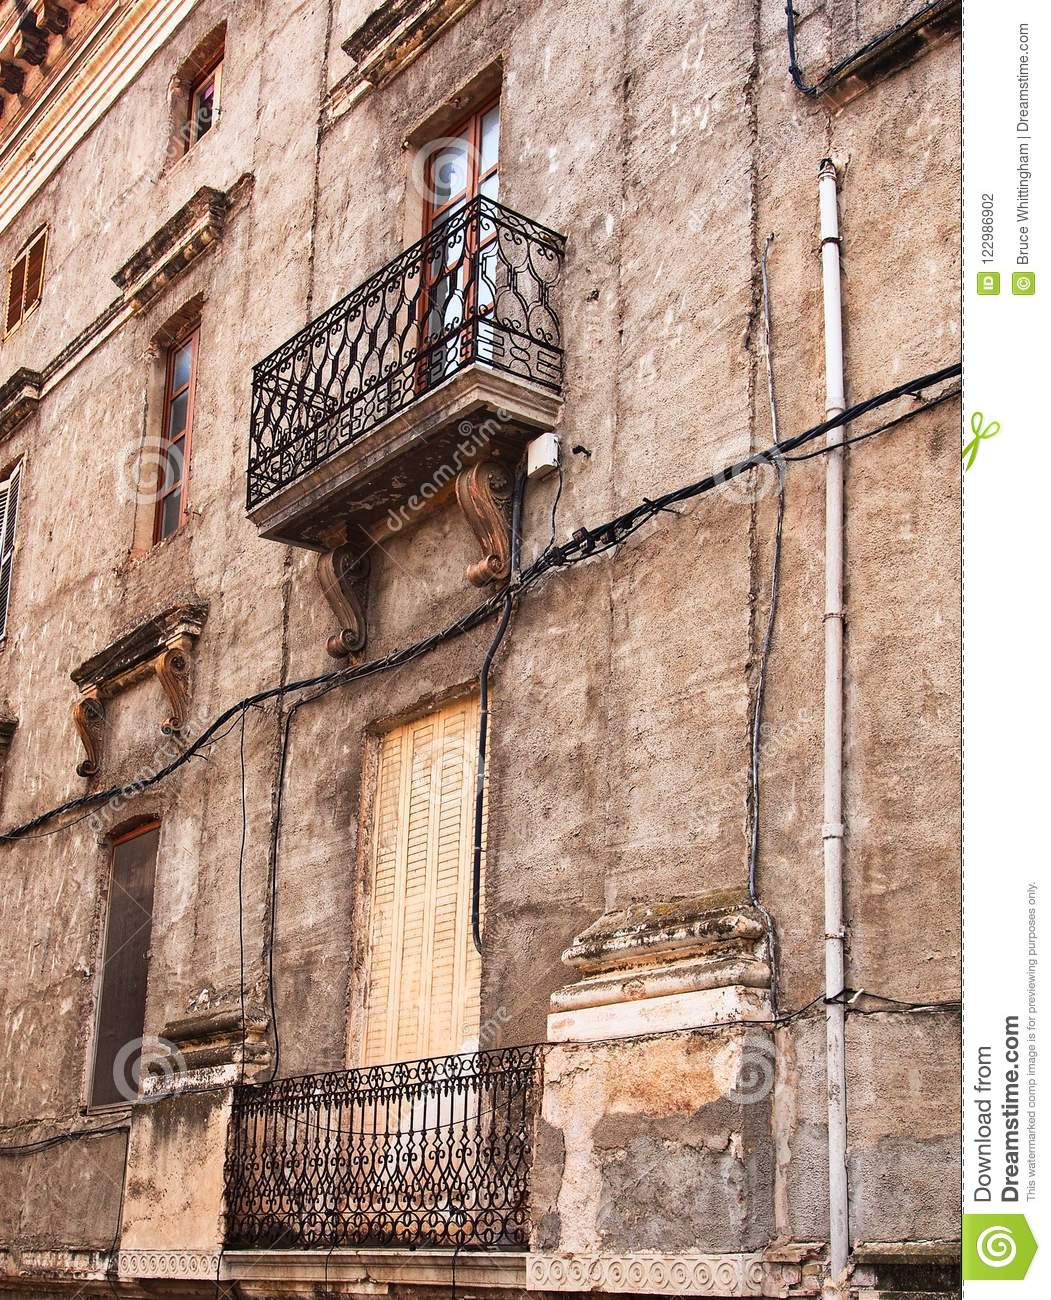 Old Brick Apartment Building: Historic Brick And Stone Apartment Building, Figueres